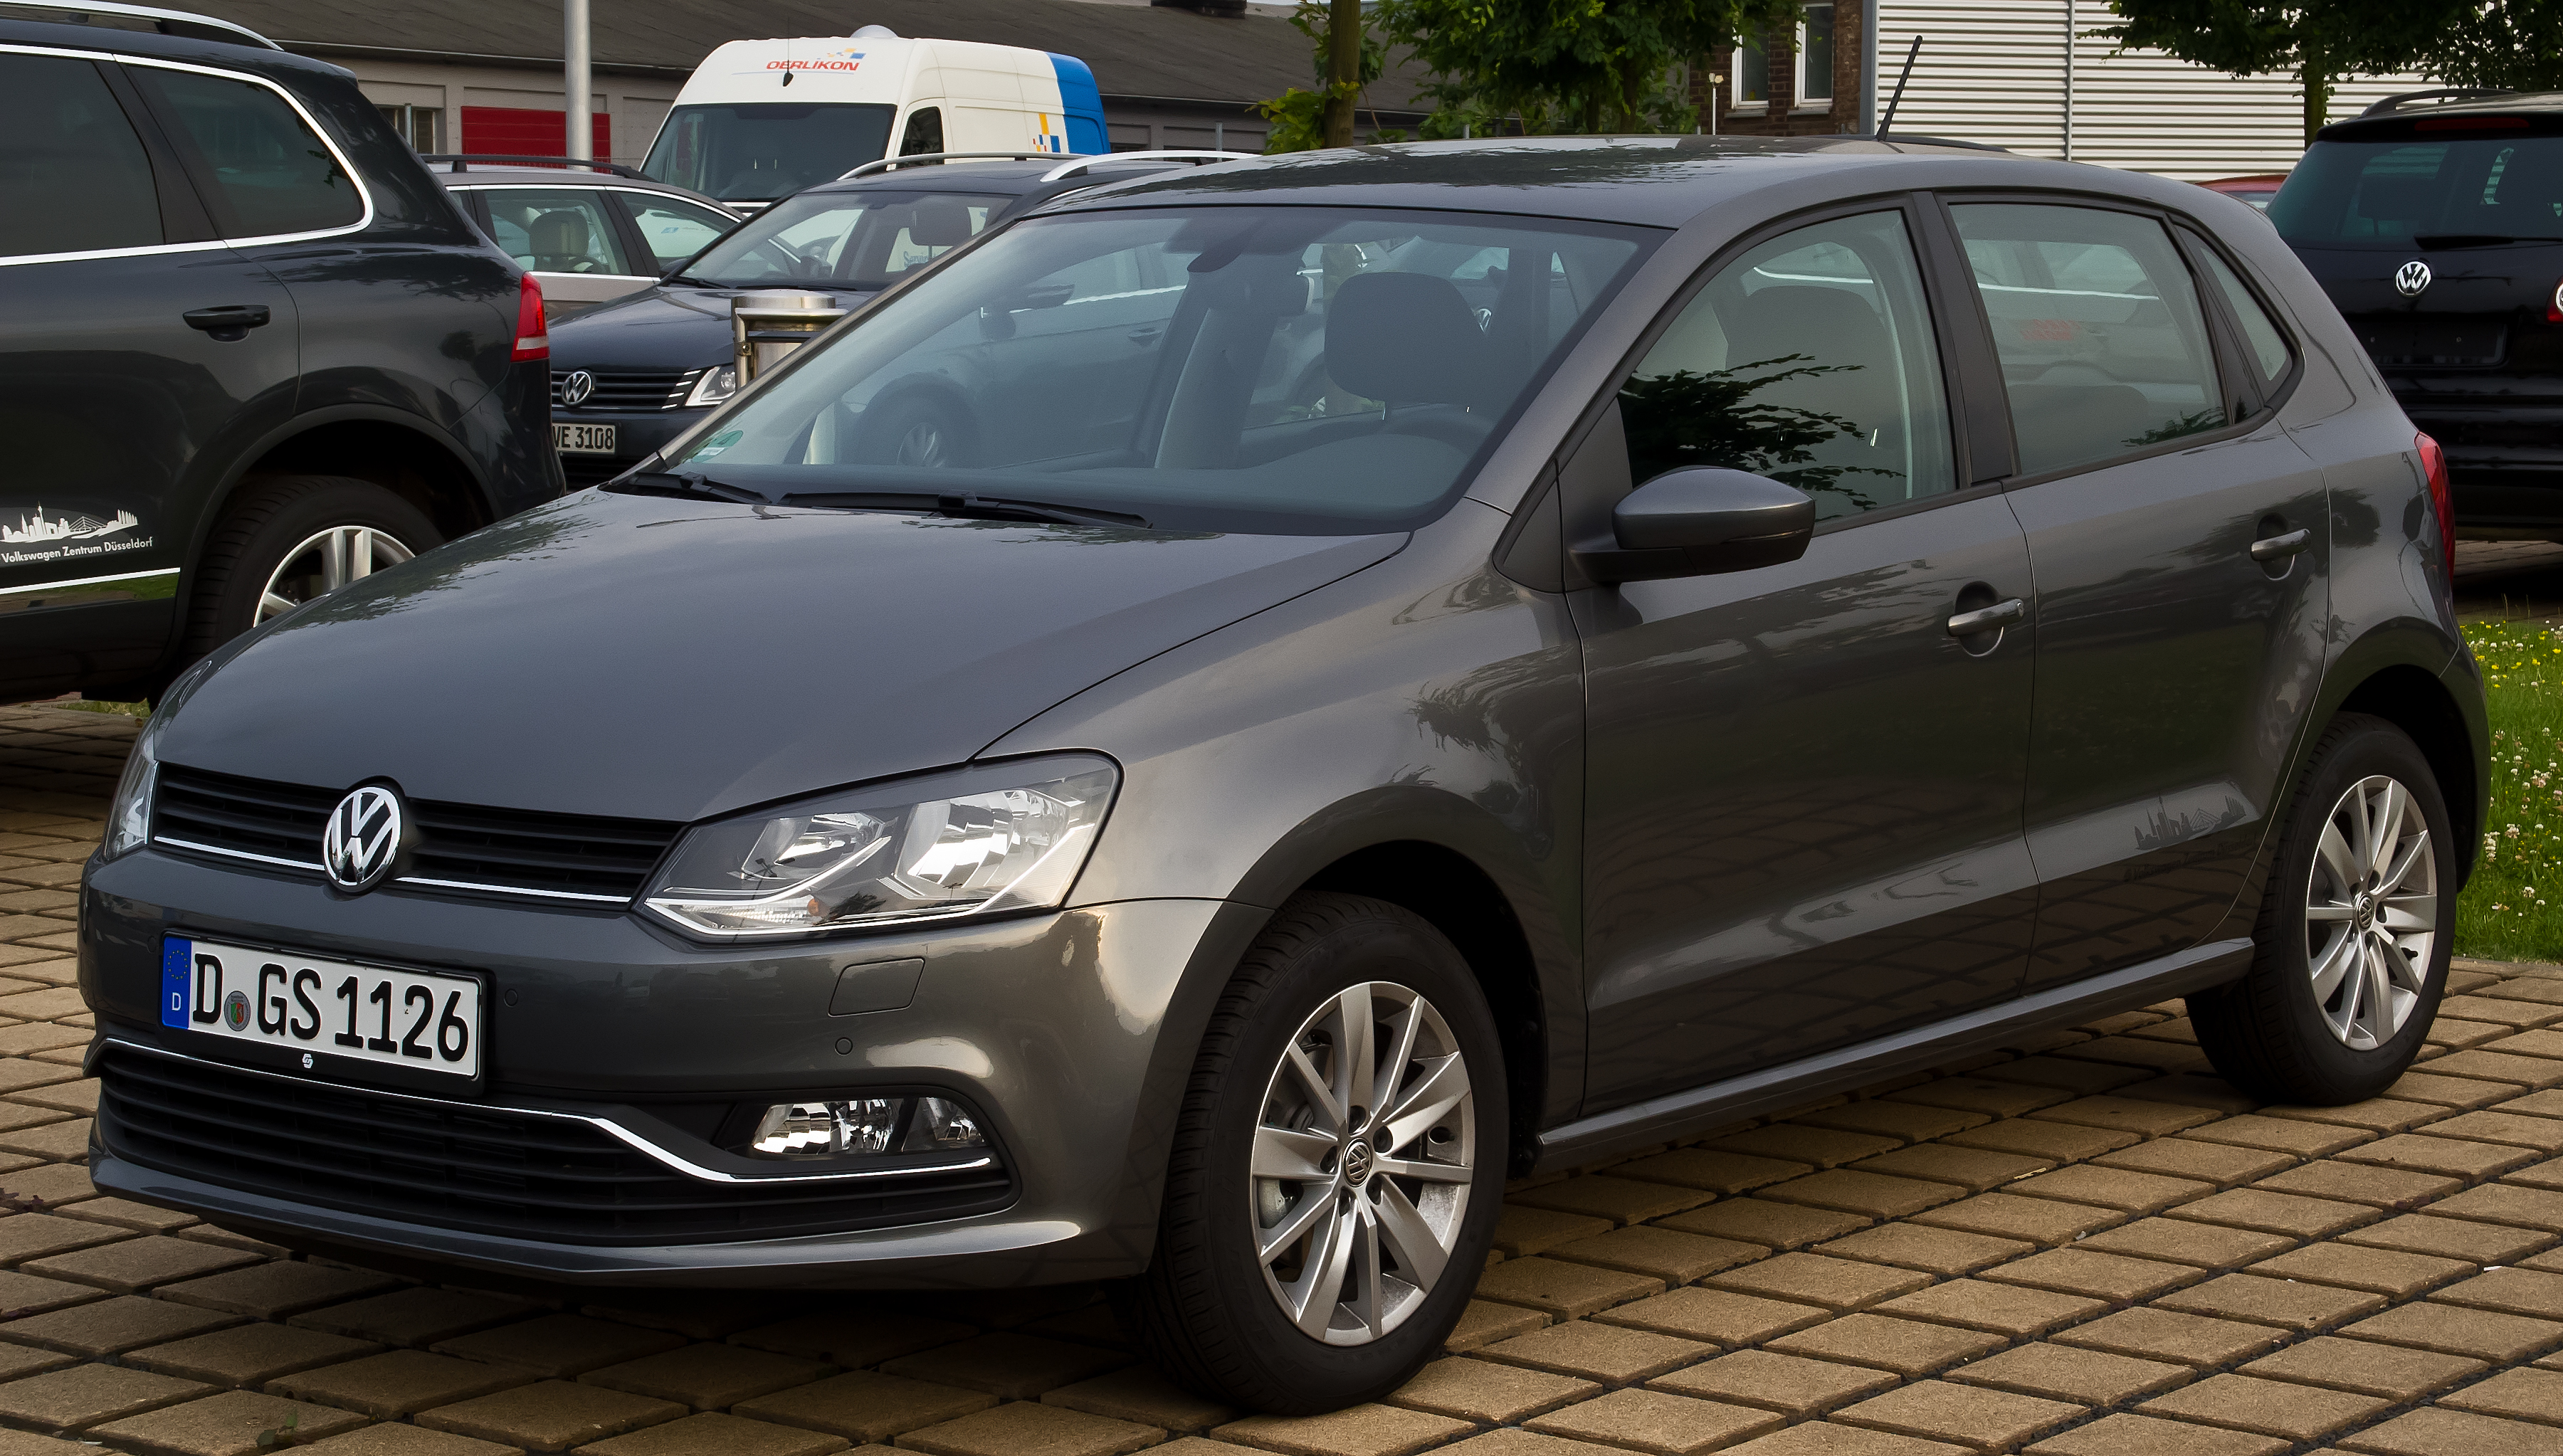 Volkswagen Polo 1.2 2014 photo - 10